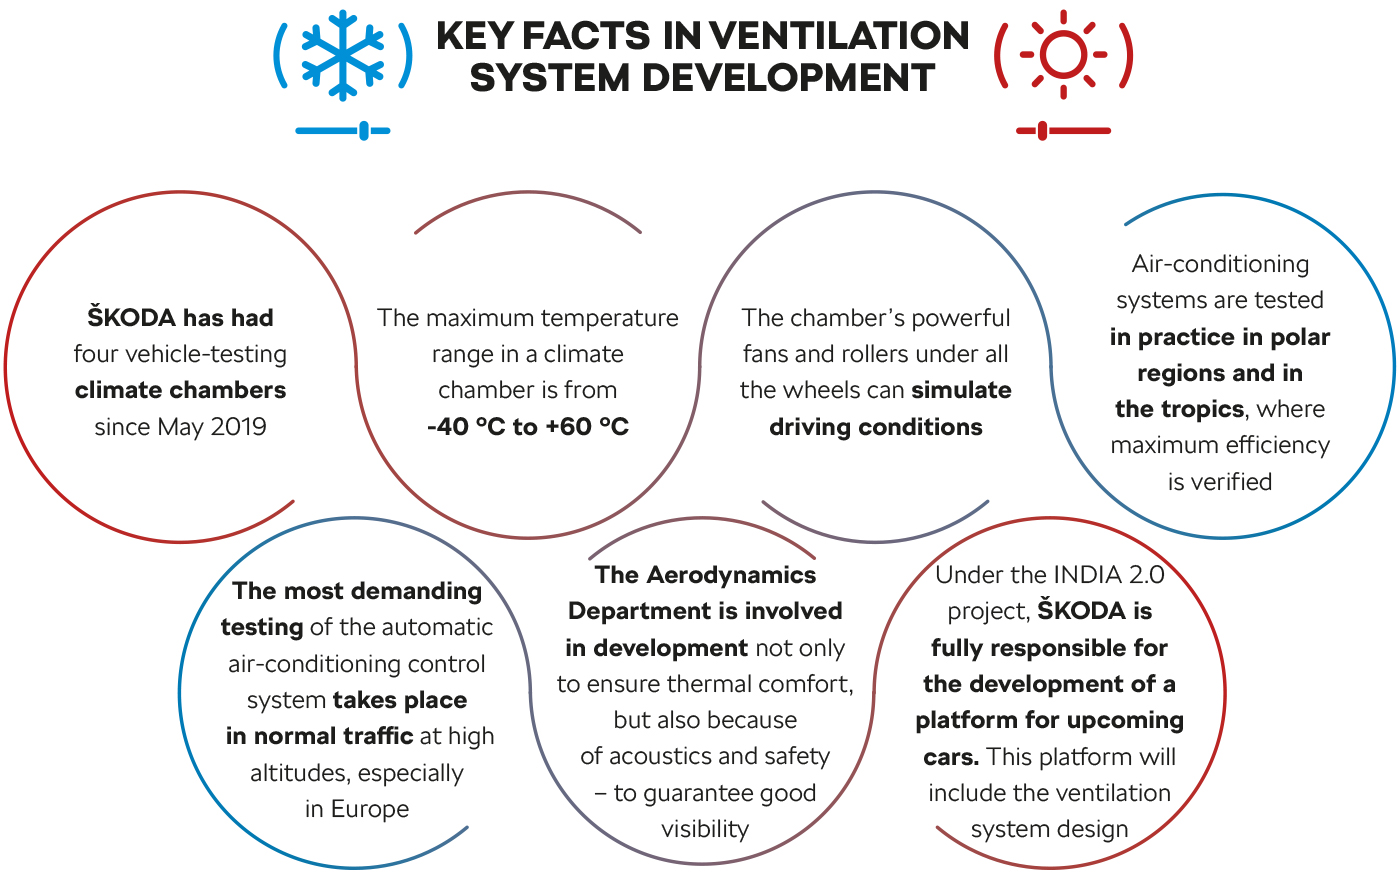 Key facts in ventilation system development